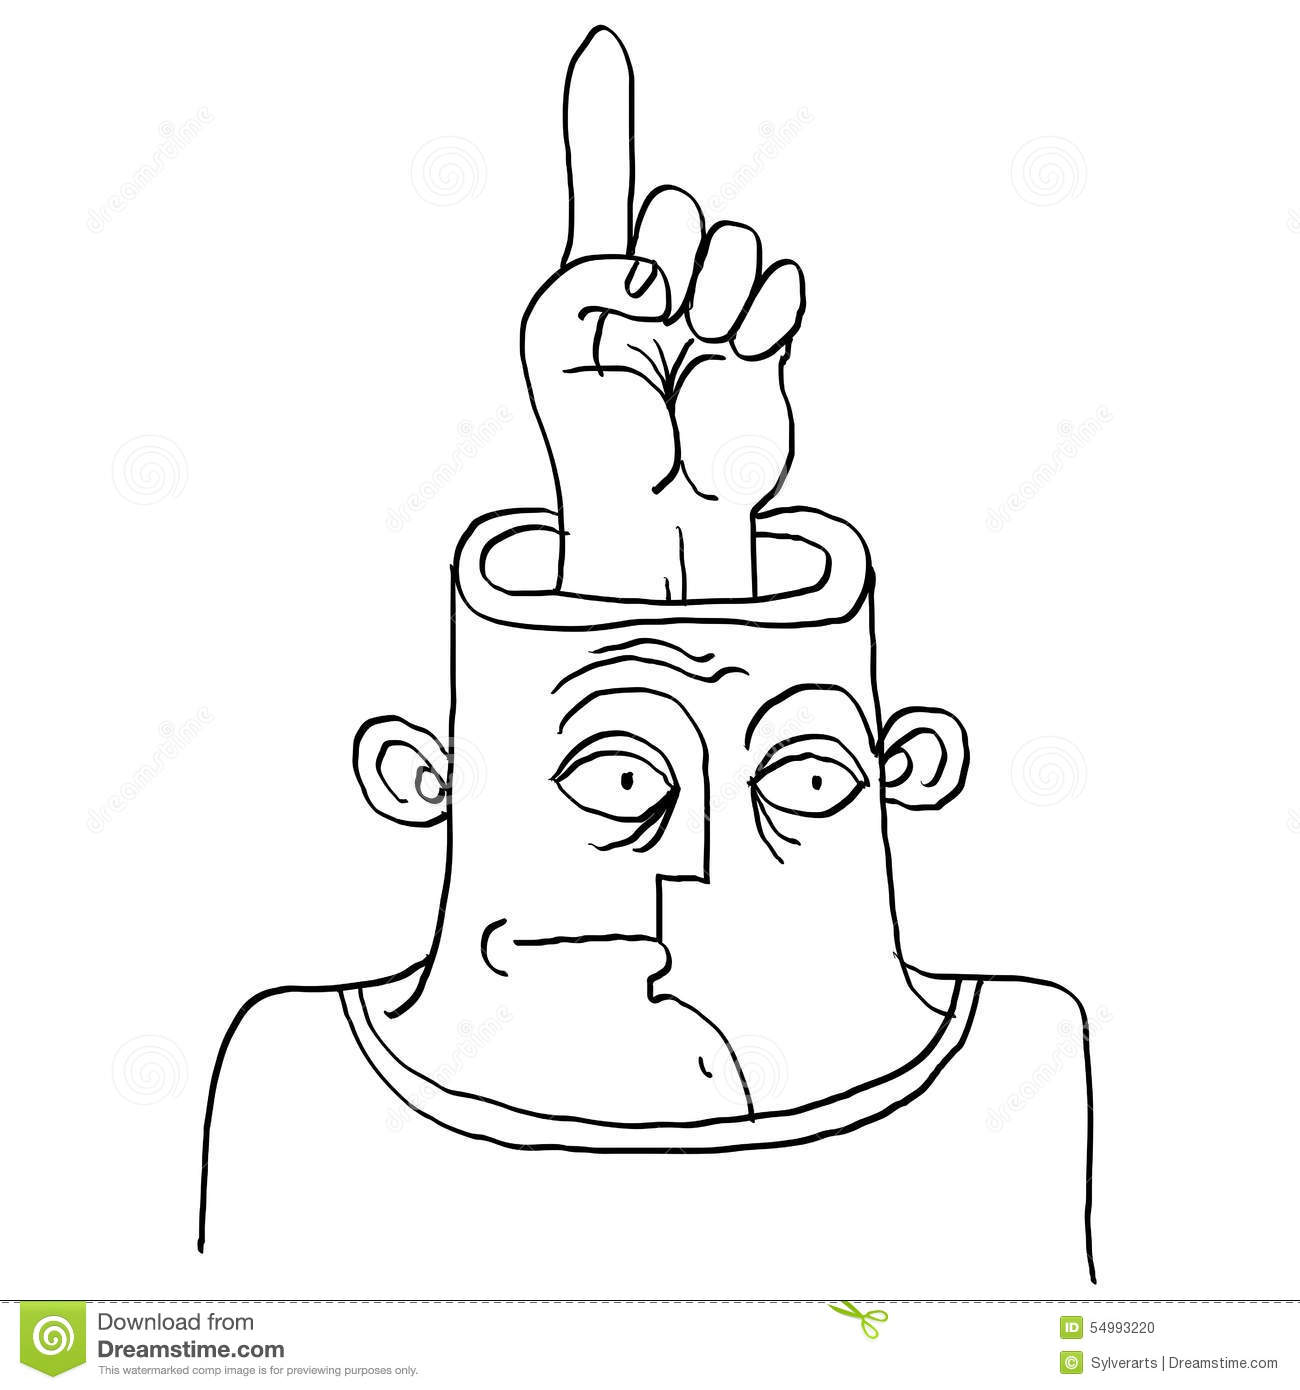 idea concept hand drawn illustration of a person thinking fing